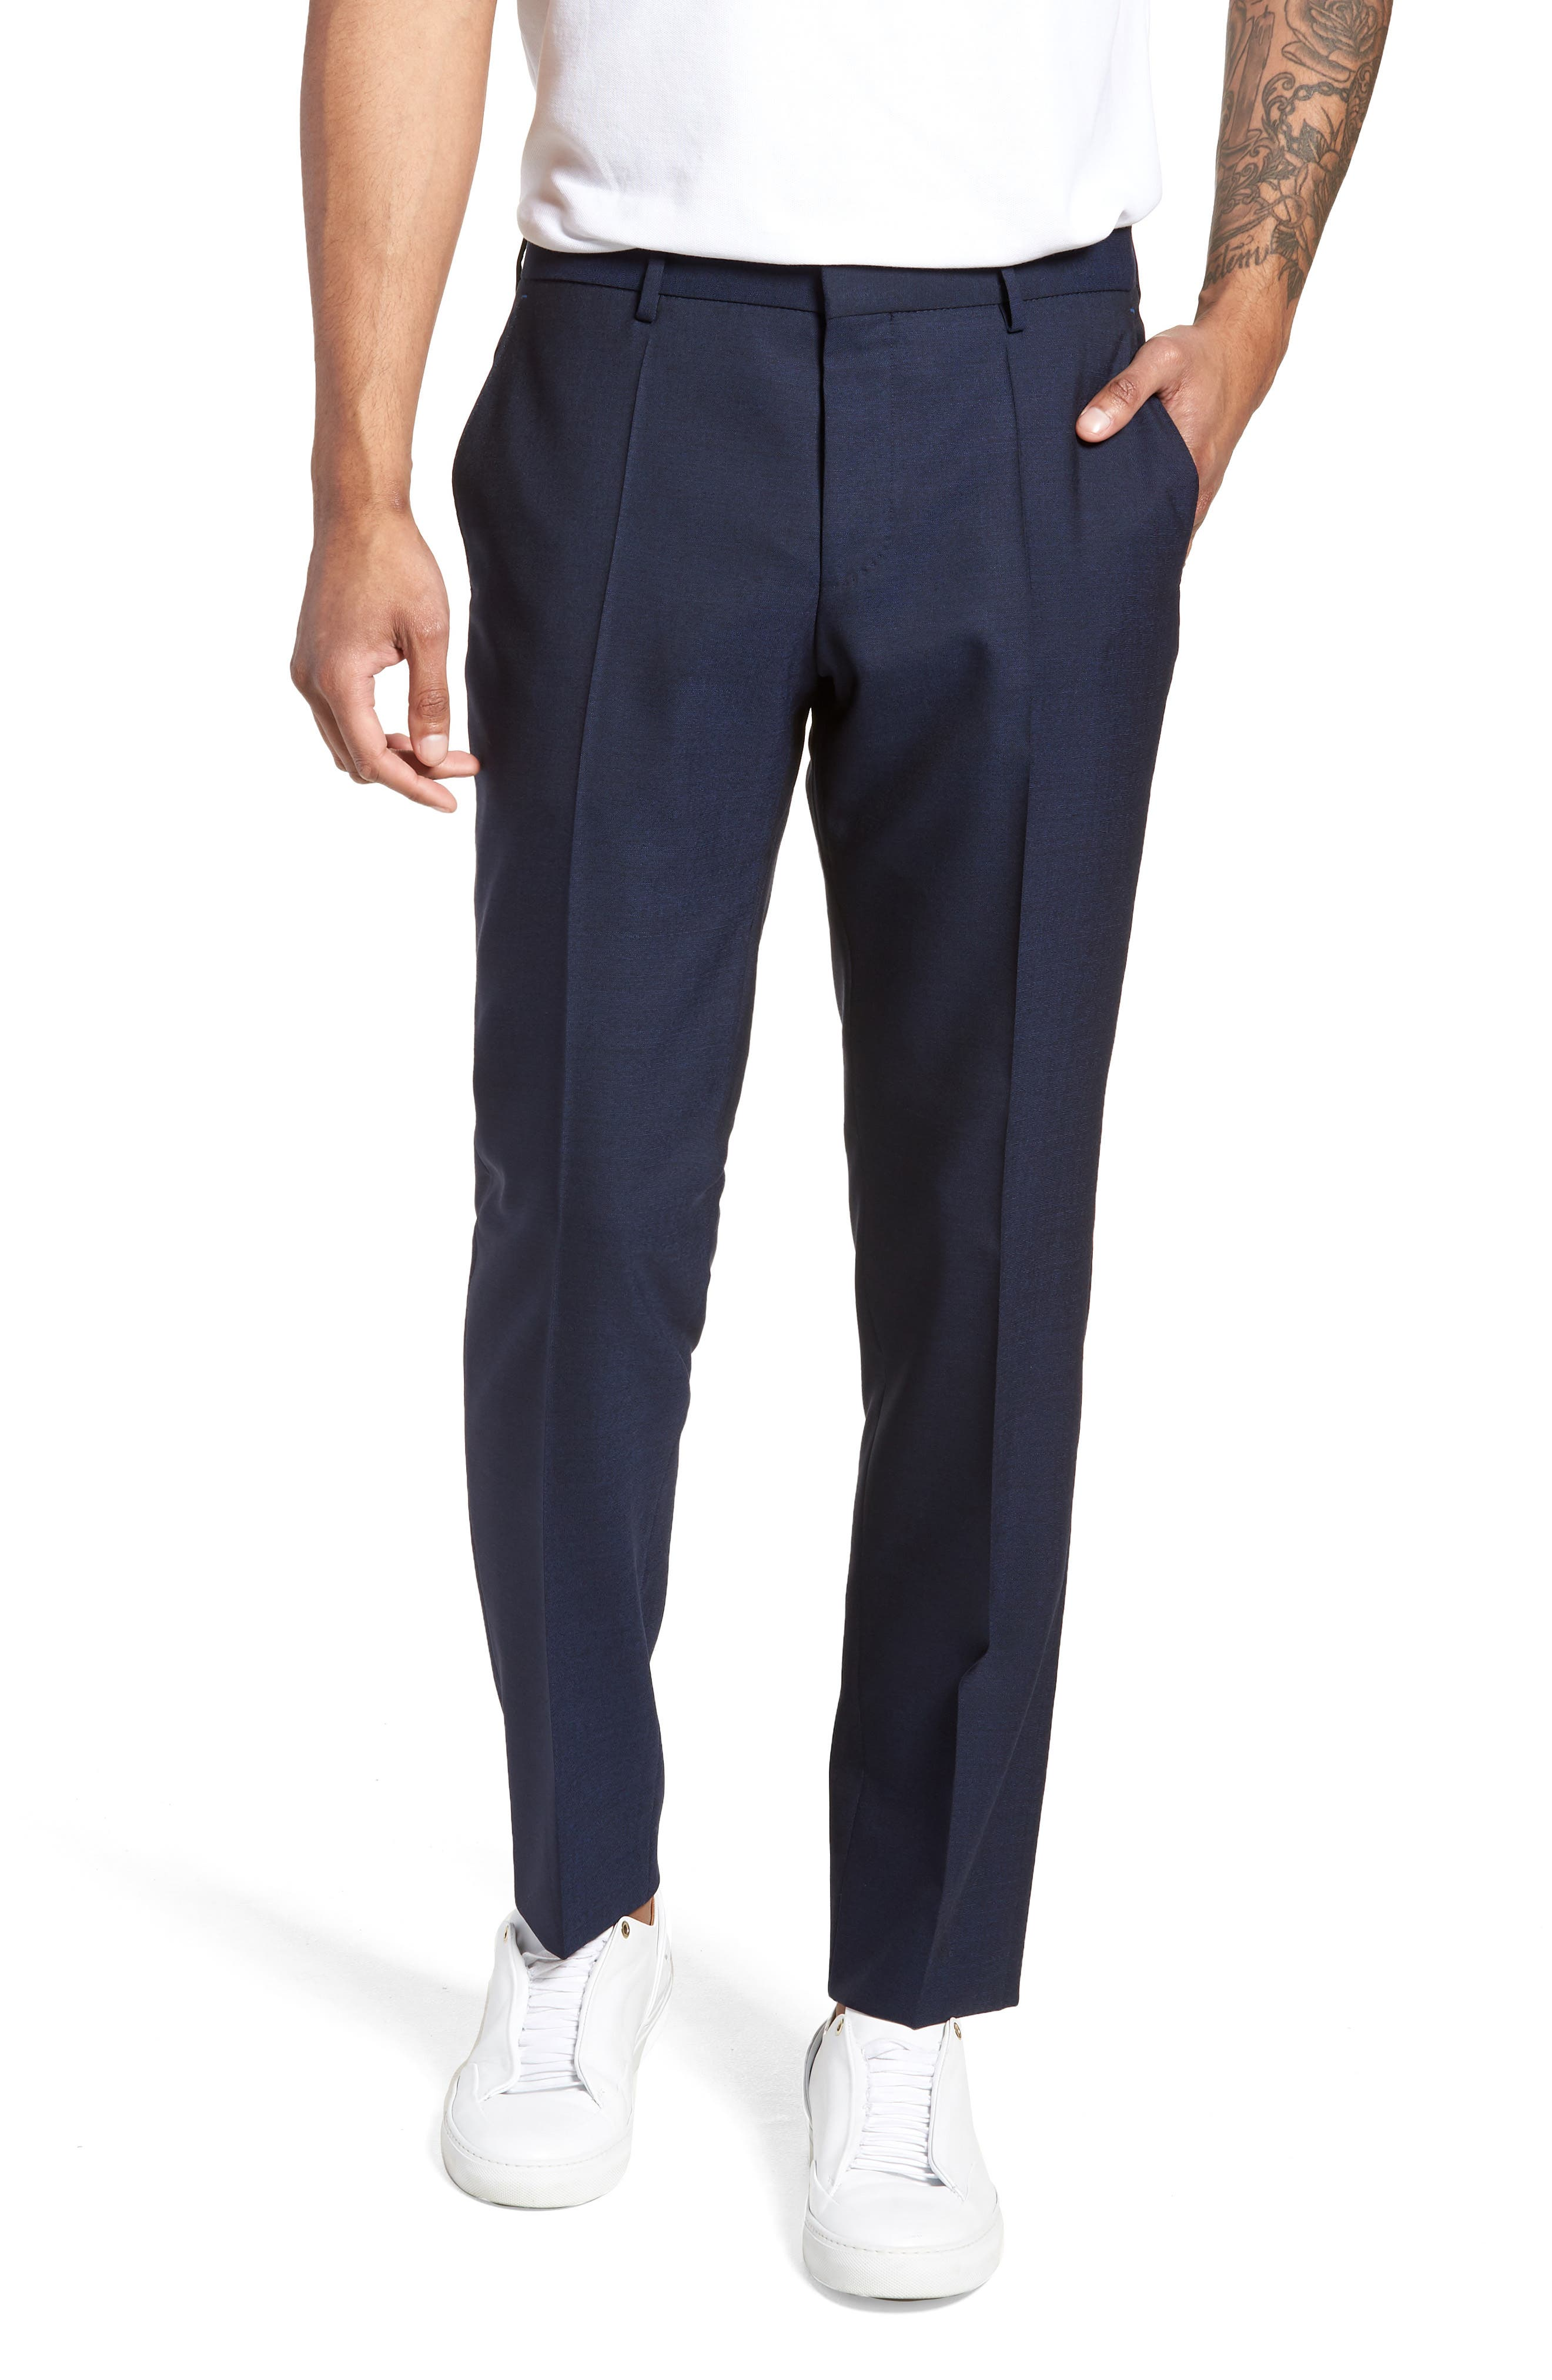 Nordstrom x BOSS Ben Flat Front Solid Wool Trousers,                             Main thumbnail 1, color,                             410